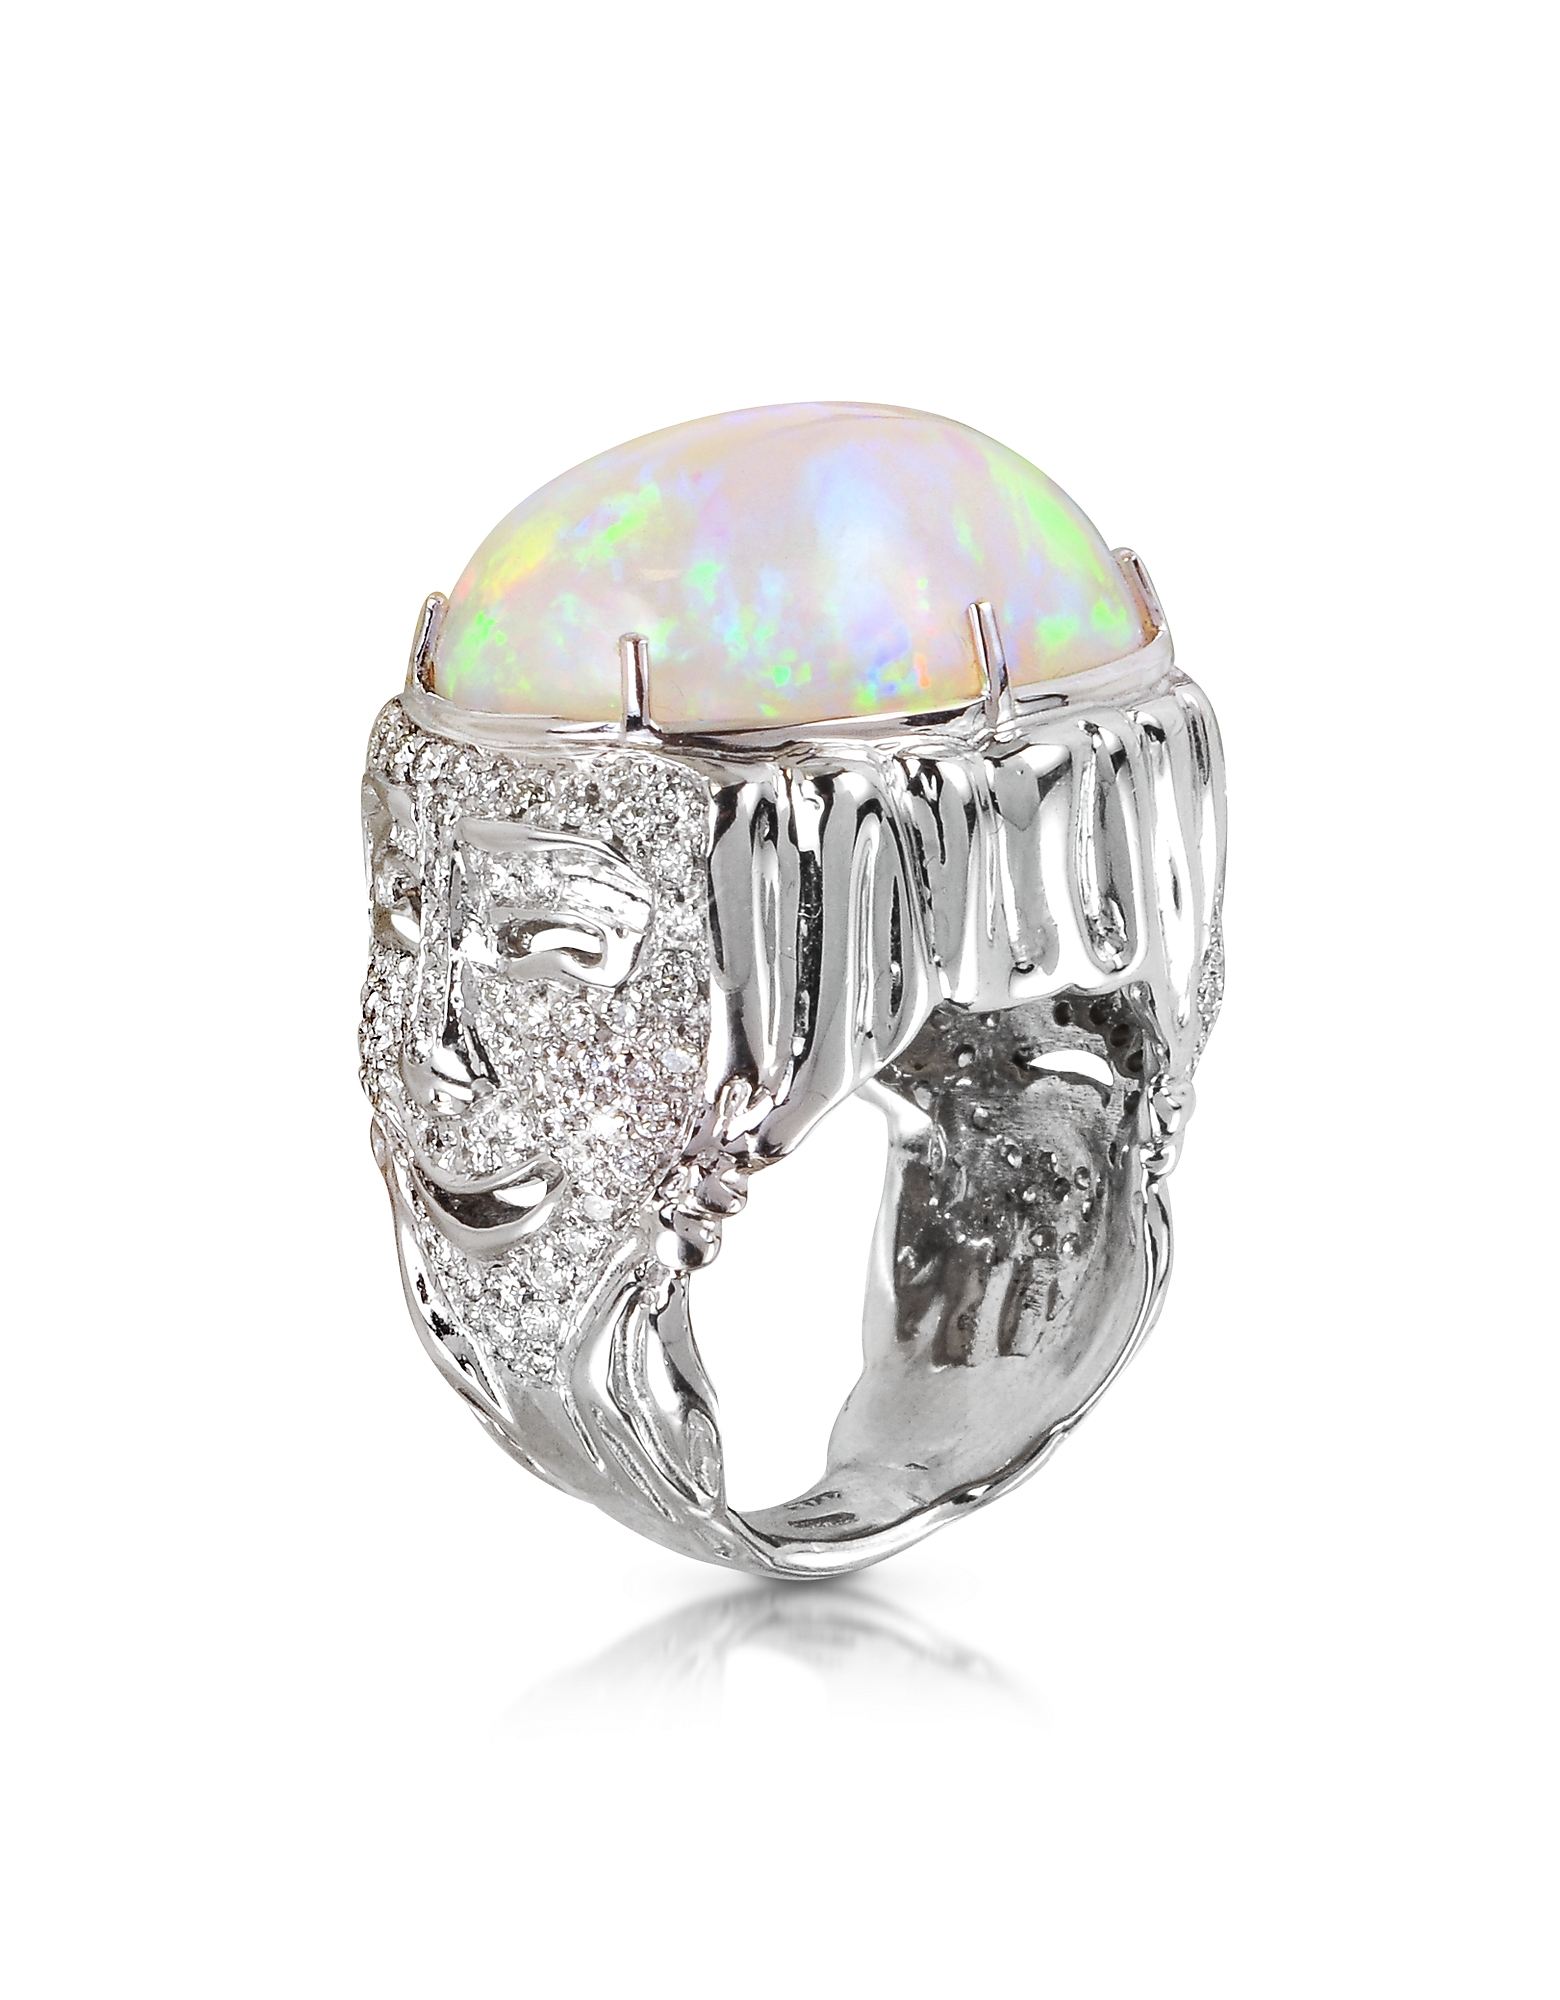 Bernard Delettrez Designer Rings, Drama Masks Gold Pave Ring w/Opal and Diamonds